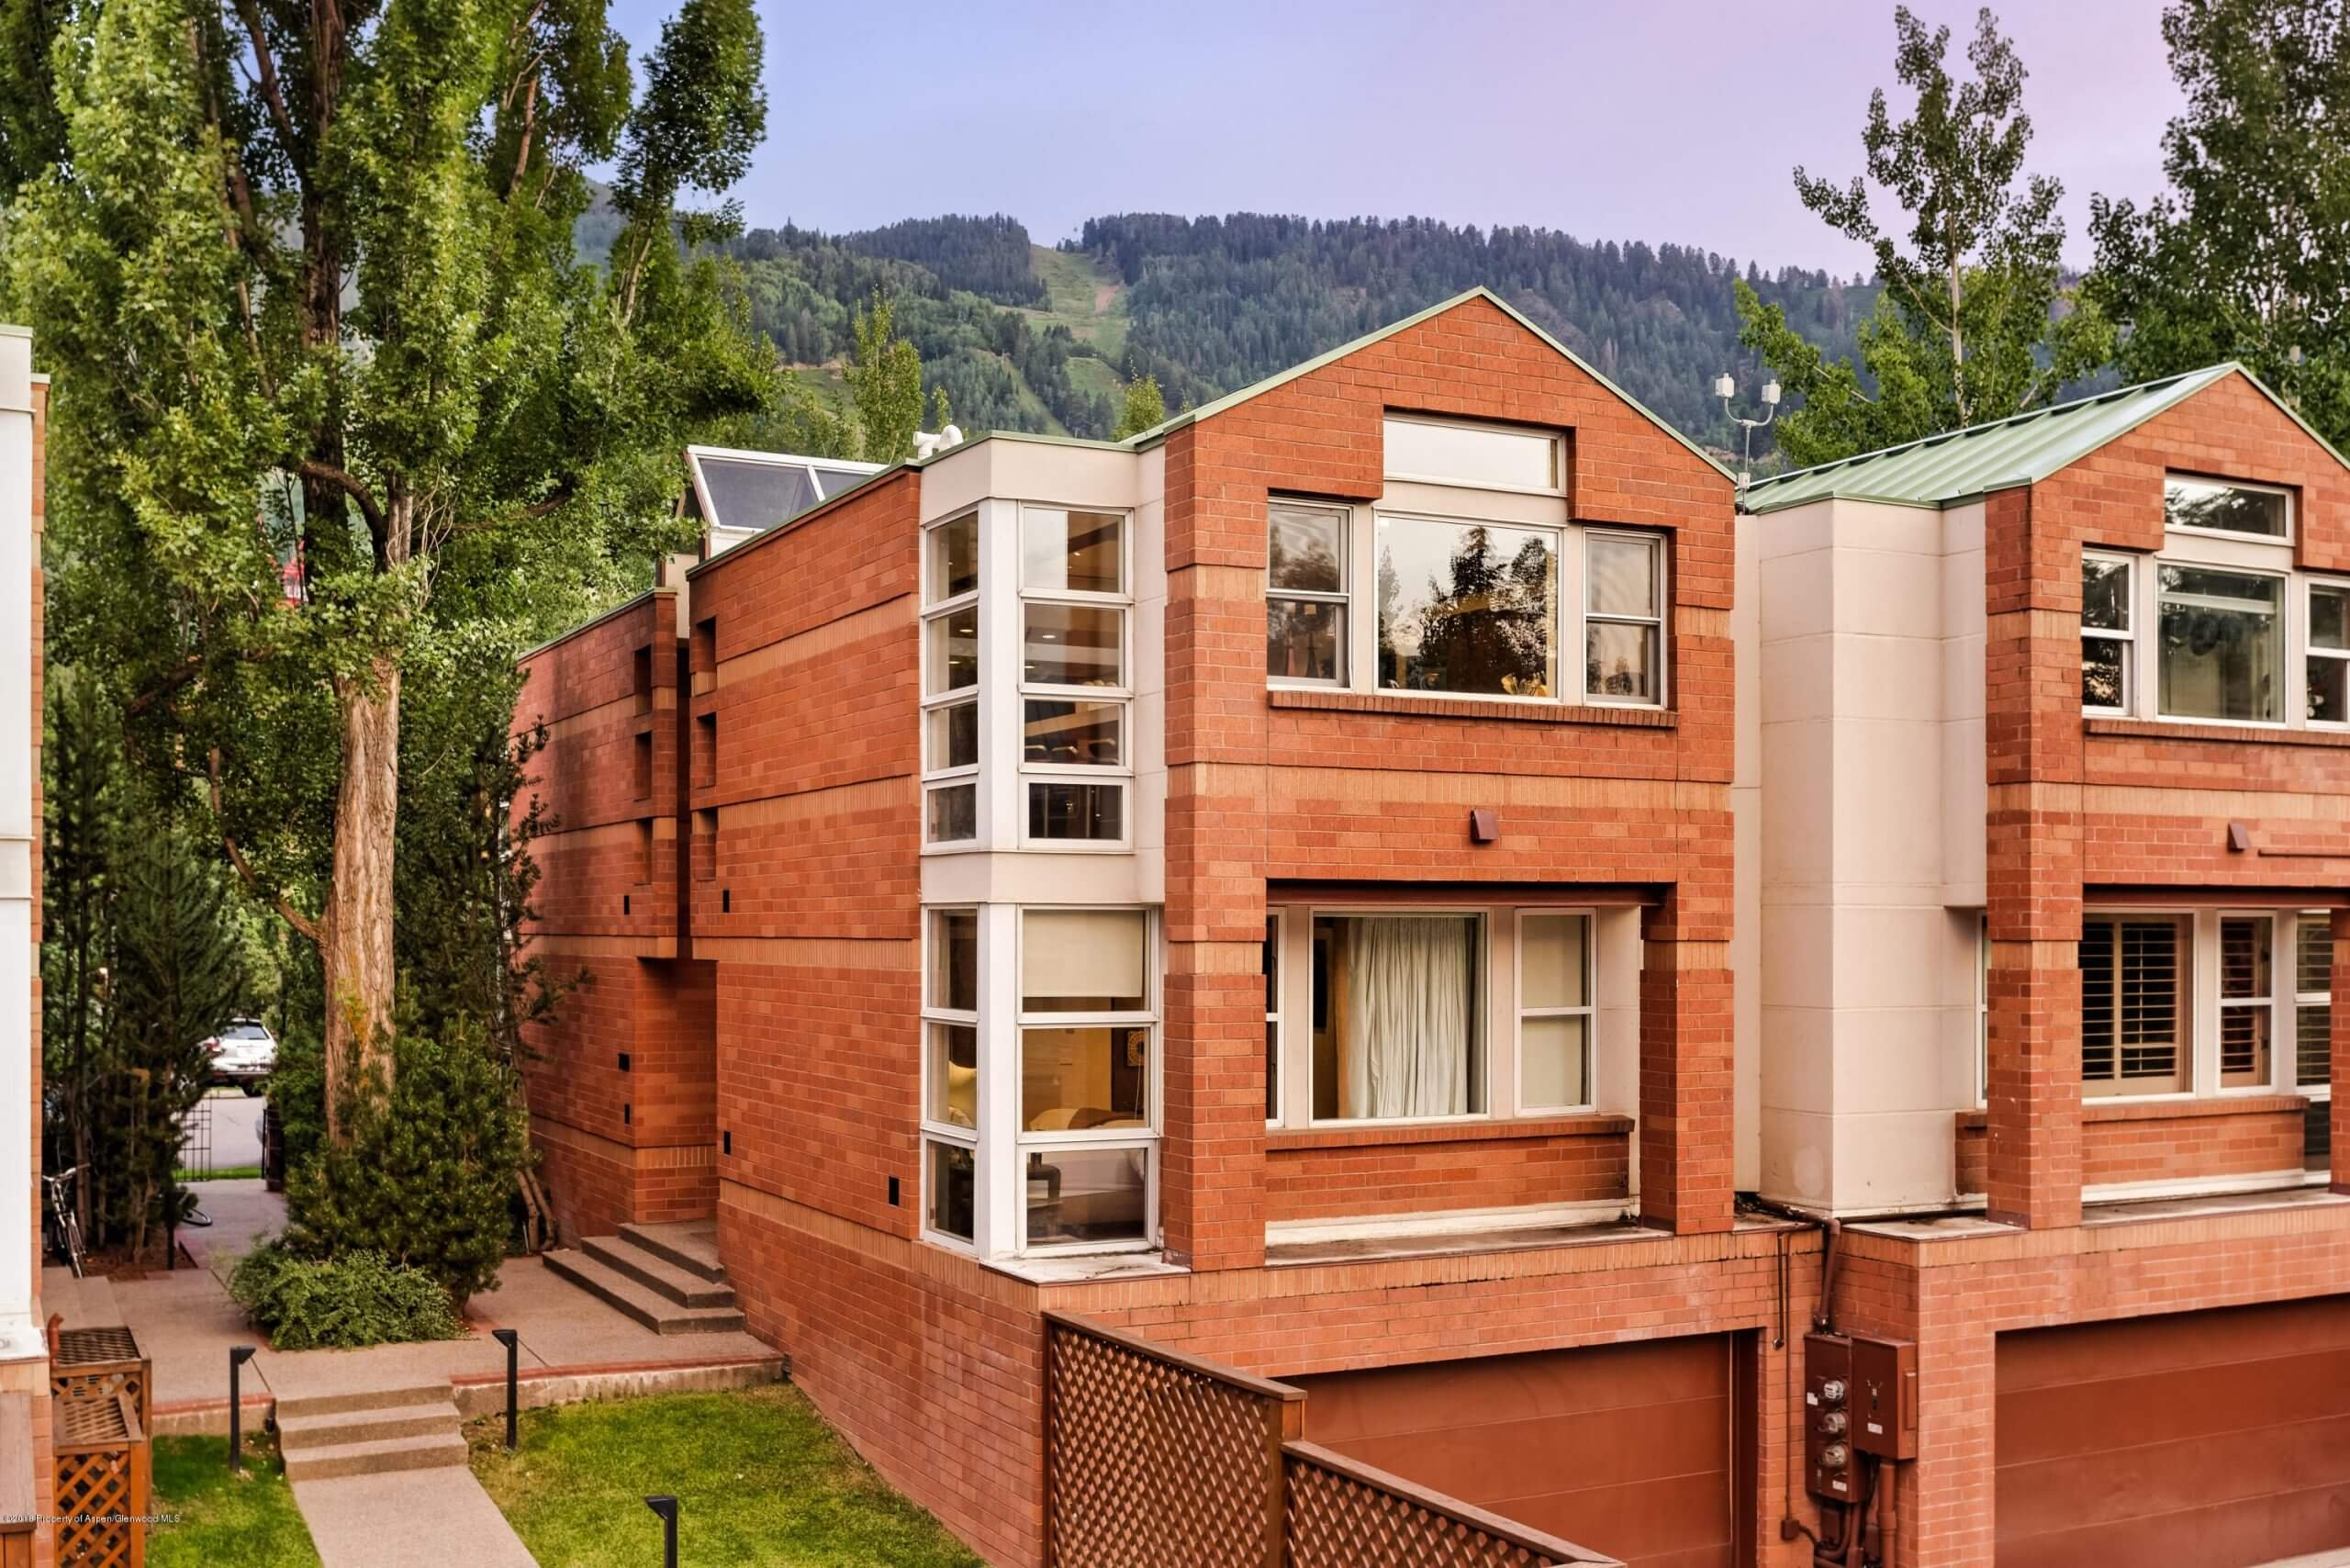 706 E Hyman Townhome in Aspen Core Sells at $7.67M/$2,968 SF Furn Image